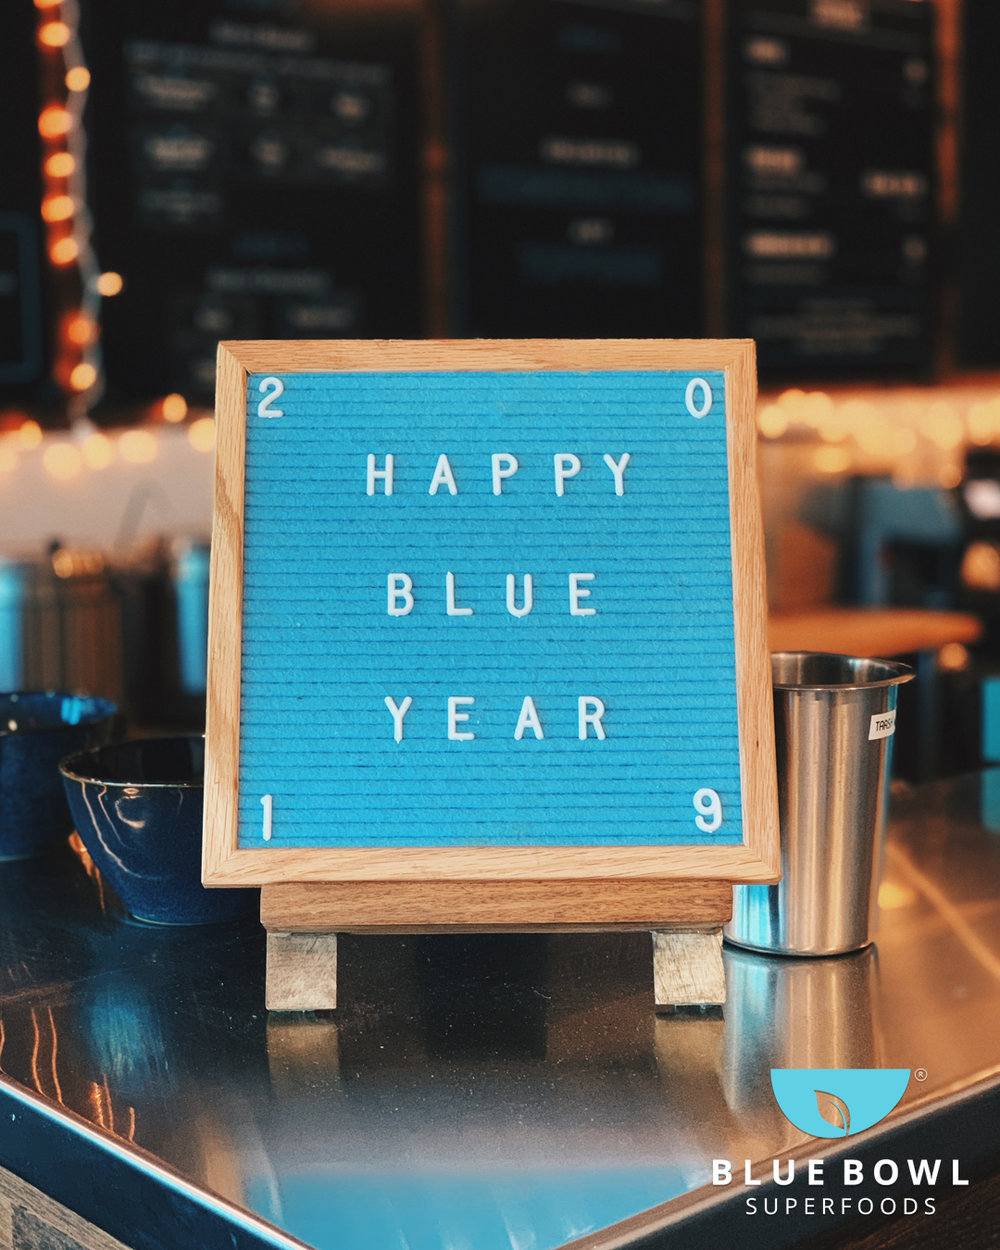 BlueBowl-IG-010119-HappyBlueYear.jpg